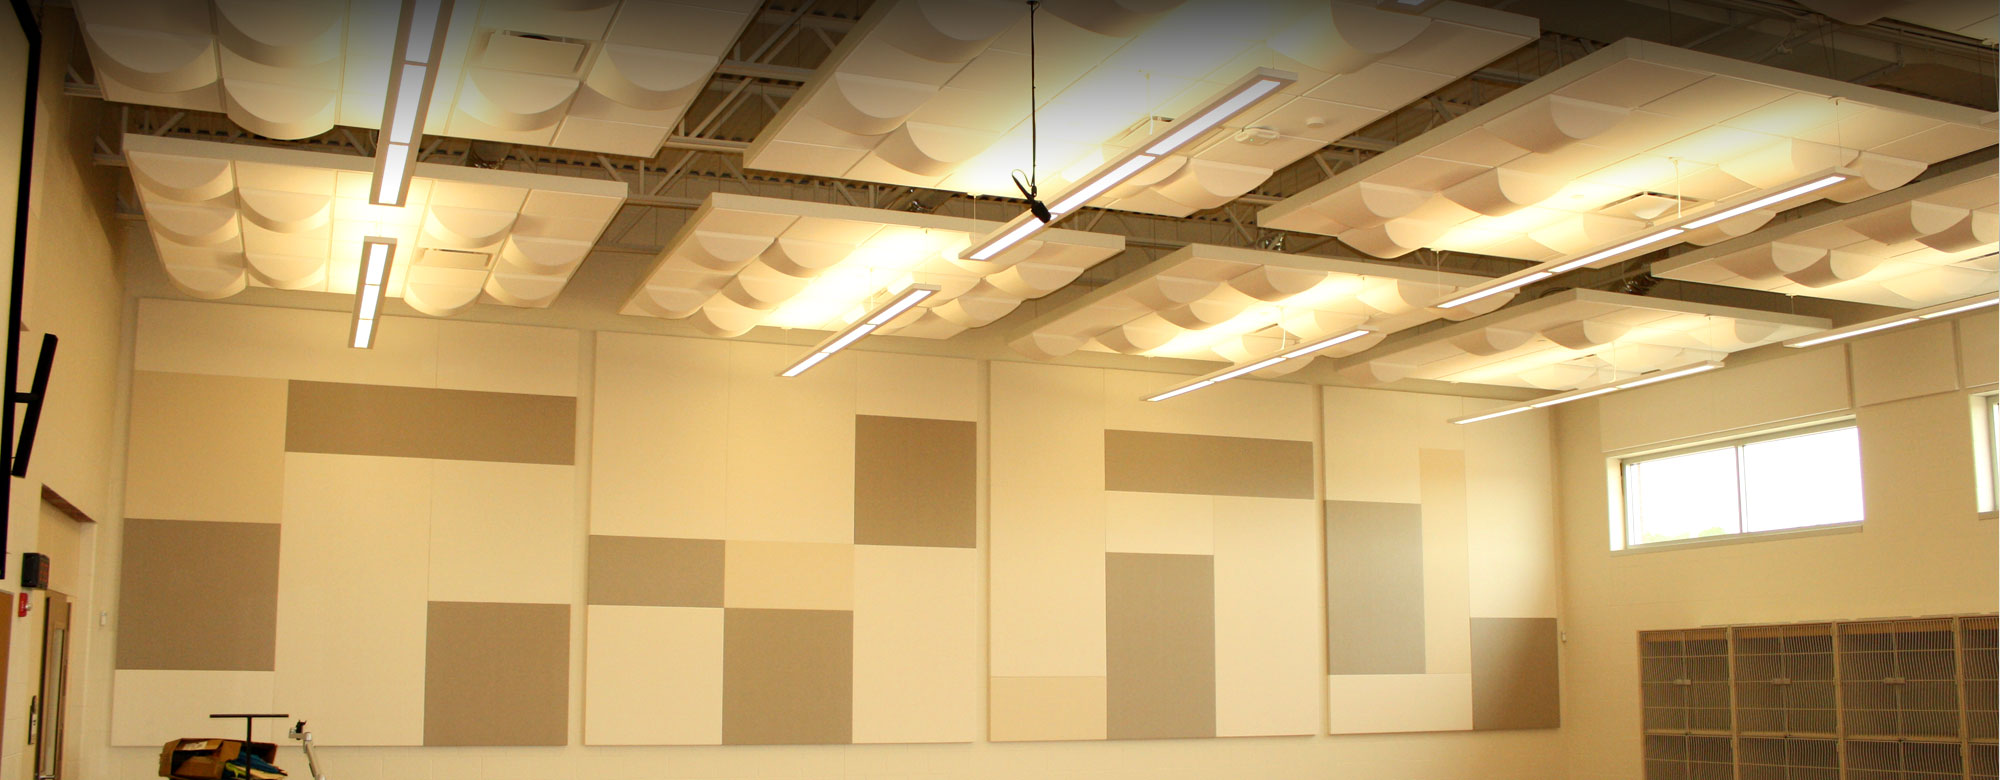 Modern accoustical ceiling panels and wall sound proofing panels in the choir room of a school